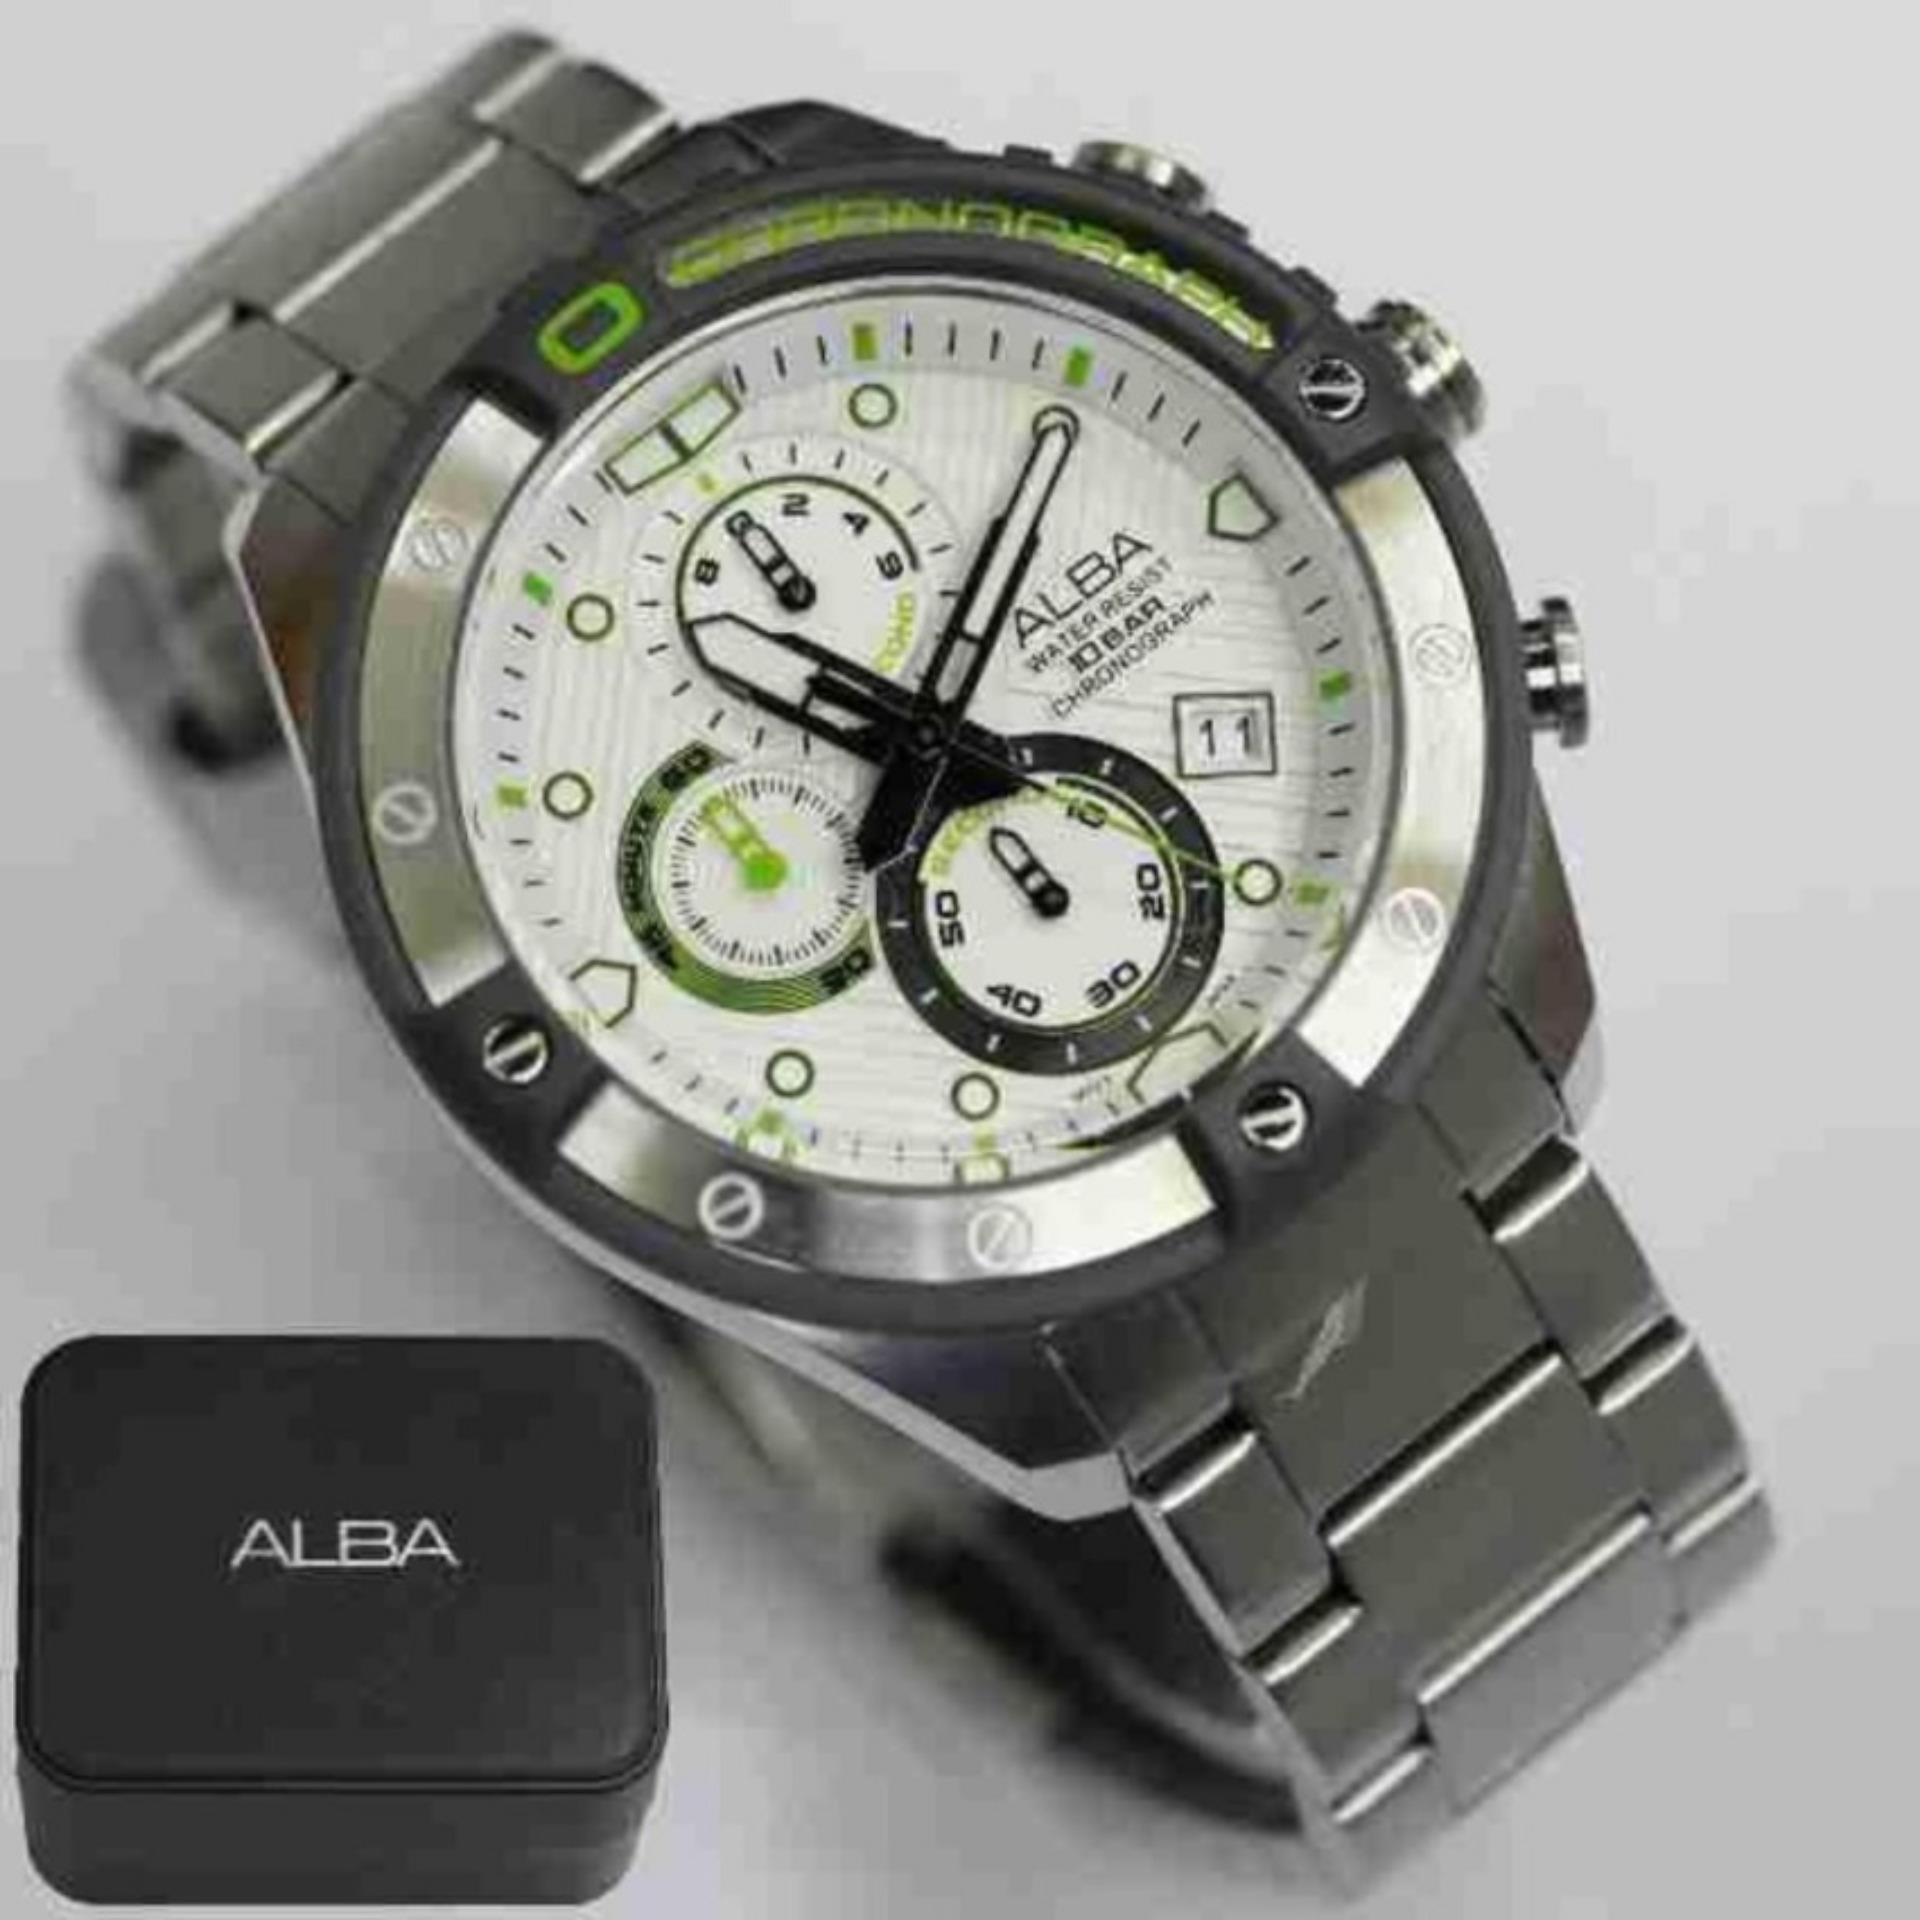 Alba Signa Chronograph Jam Tangan Strap Stainless Steel Silver 160639 Pria Am3327x1